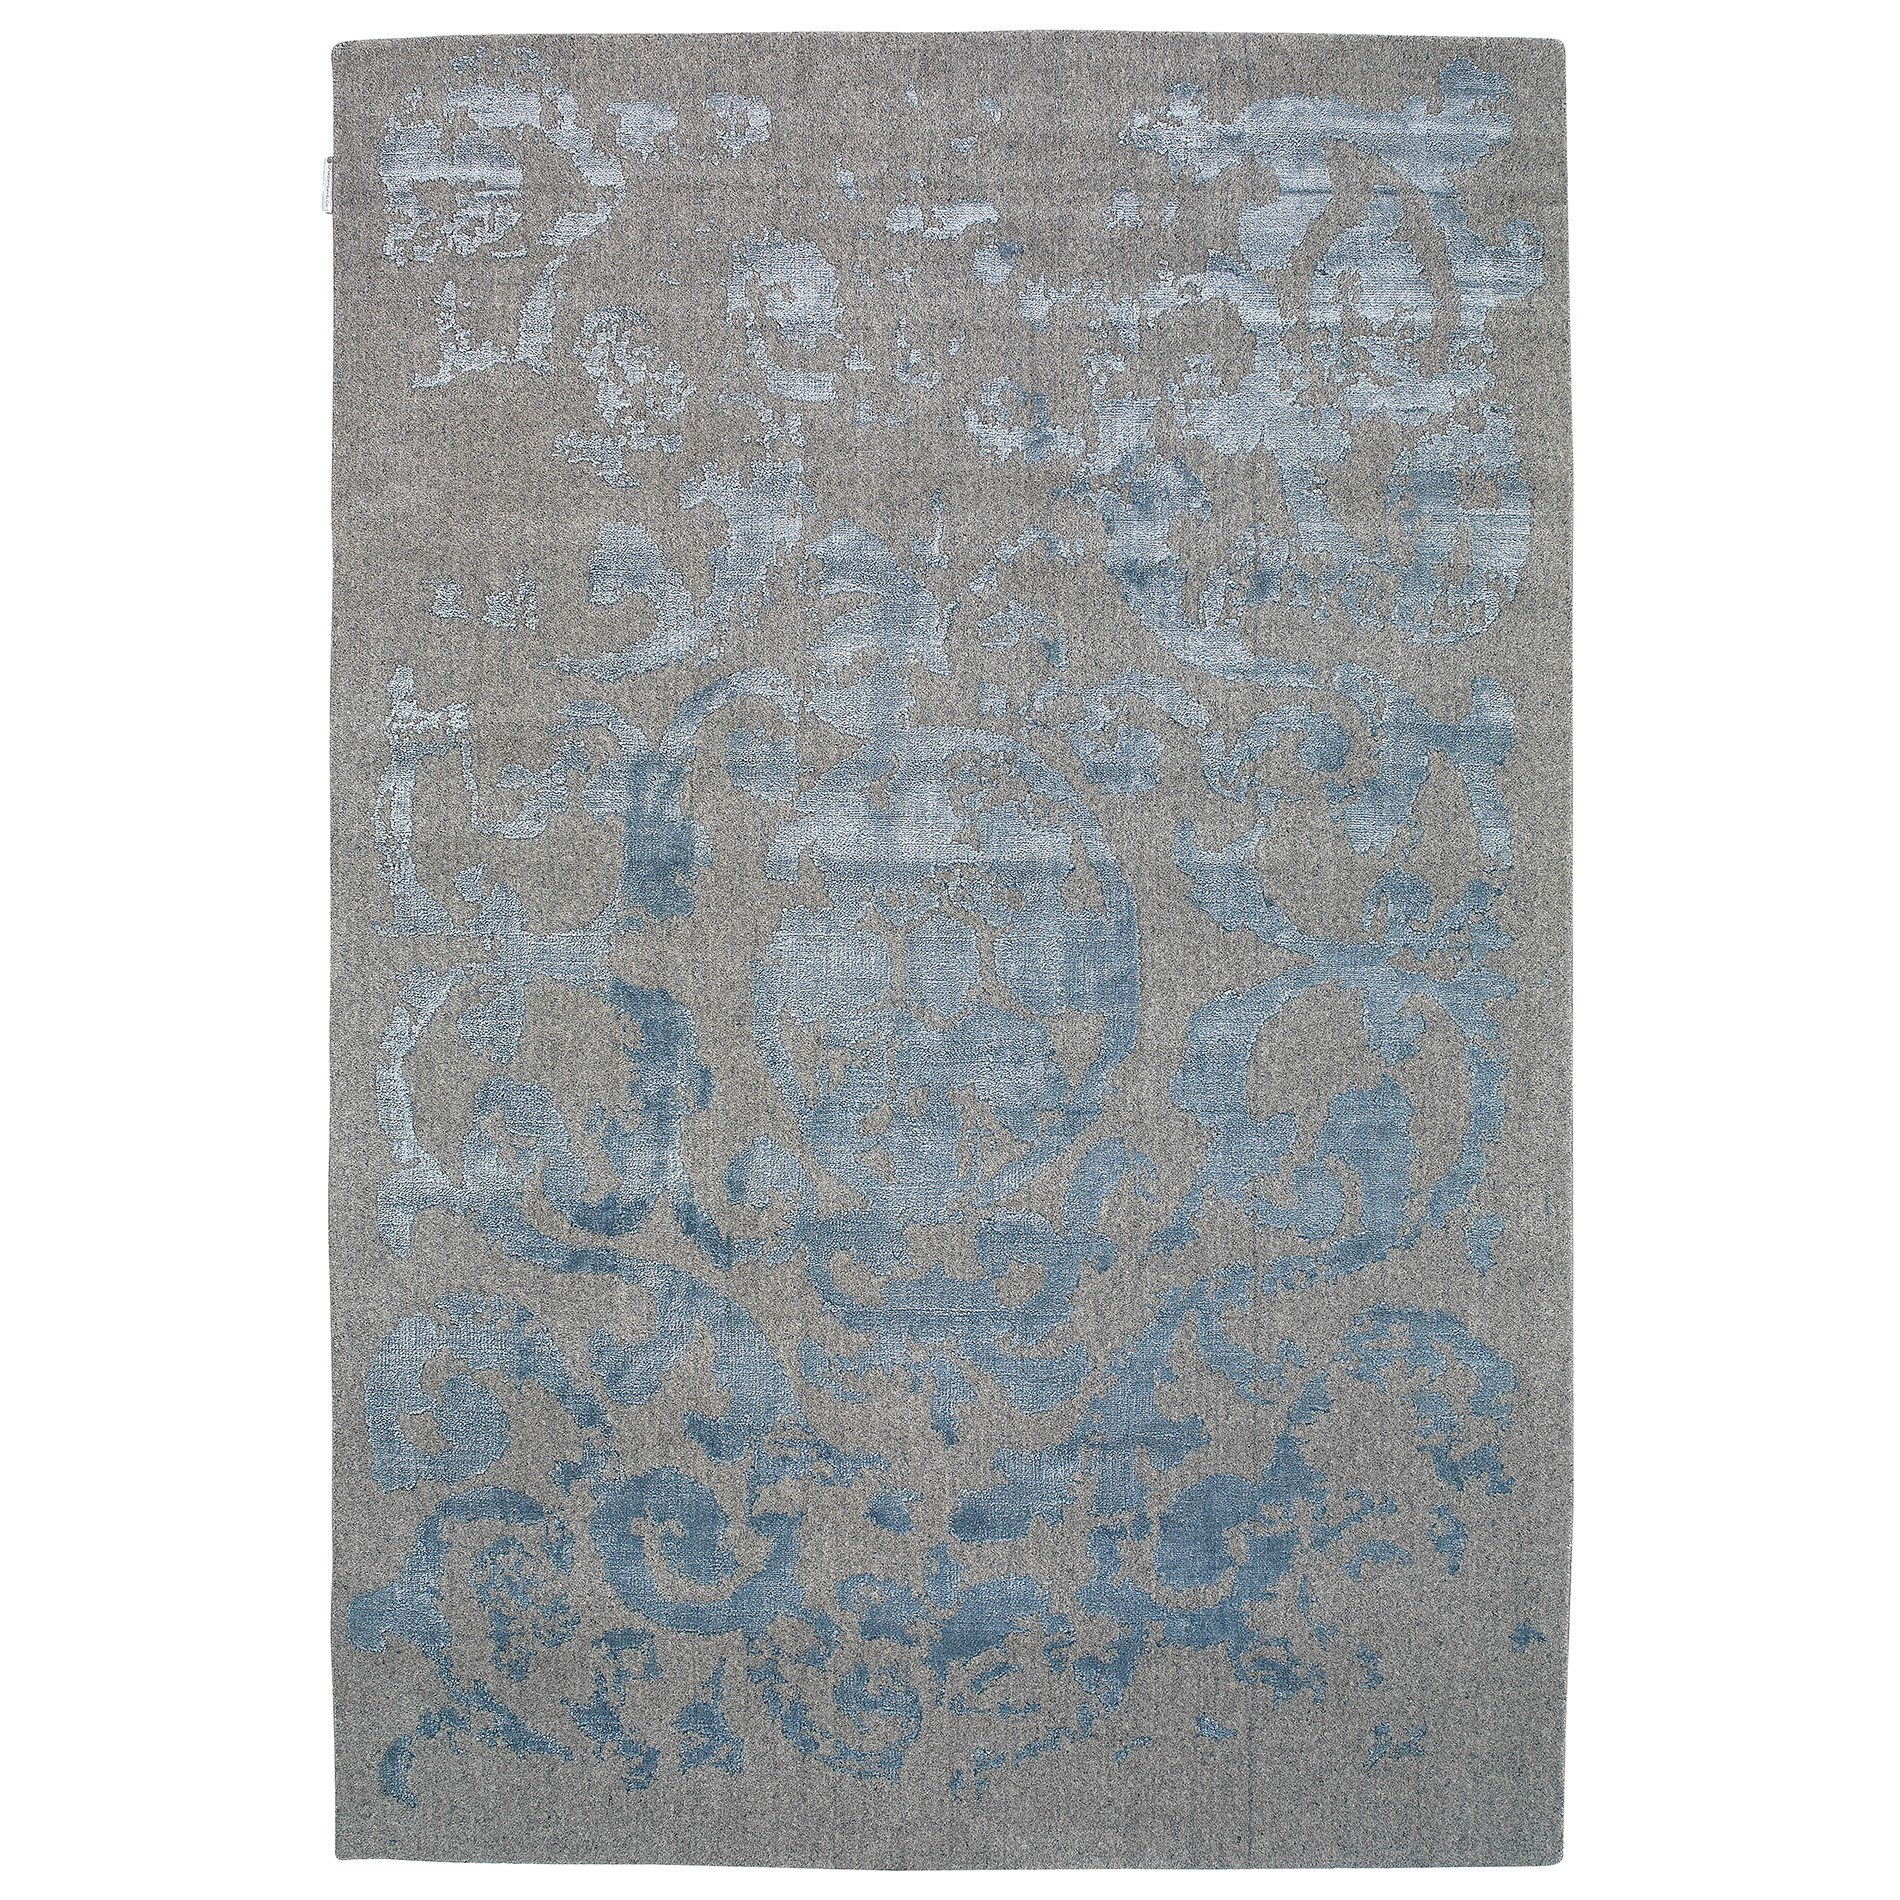 Vienna No.051 Handmade Wool Transitional Rug, 290x200cm, Grey / Blue